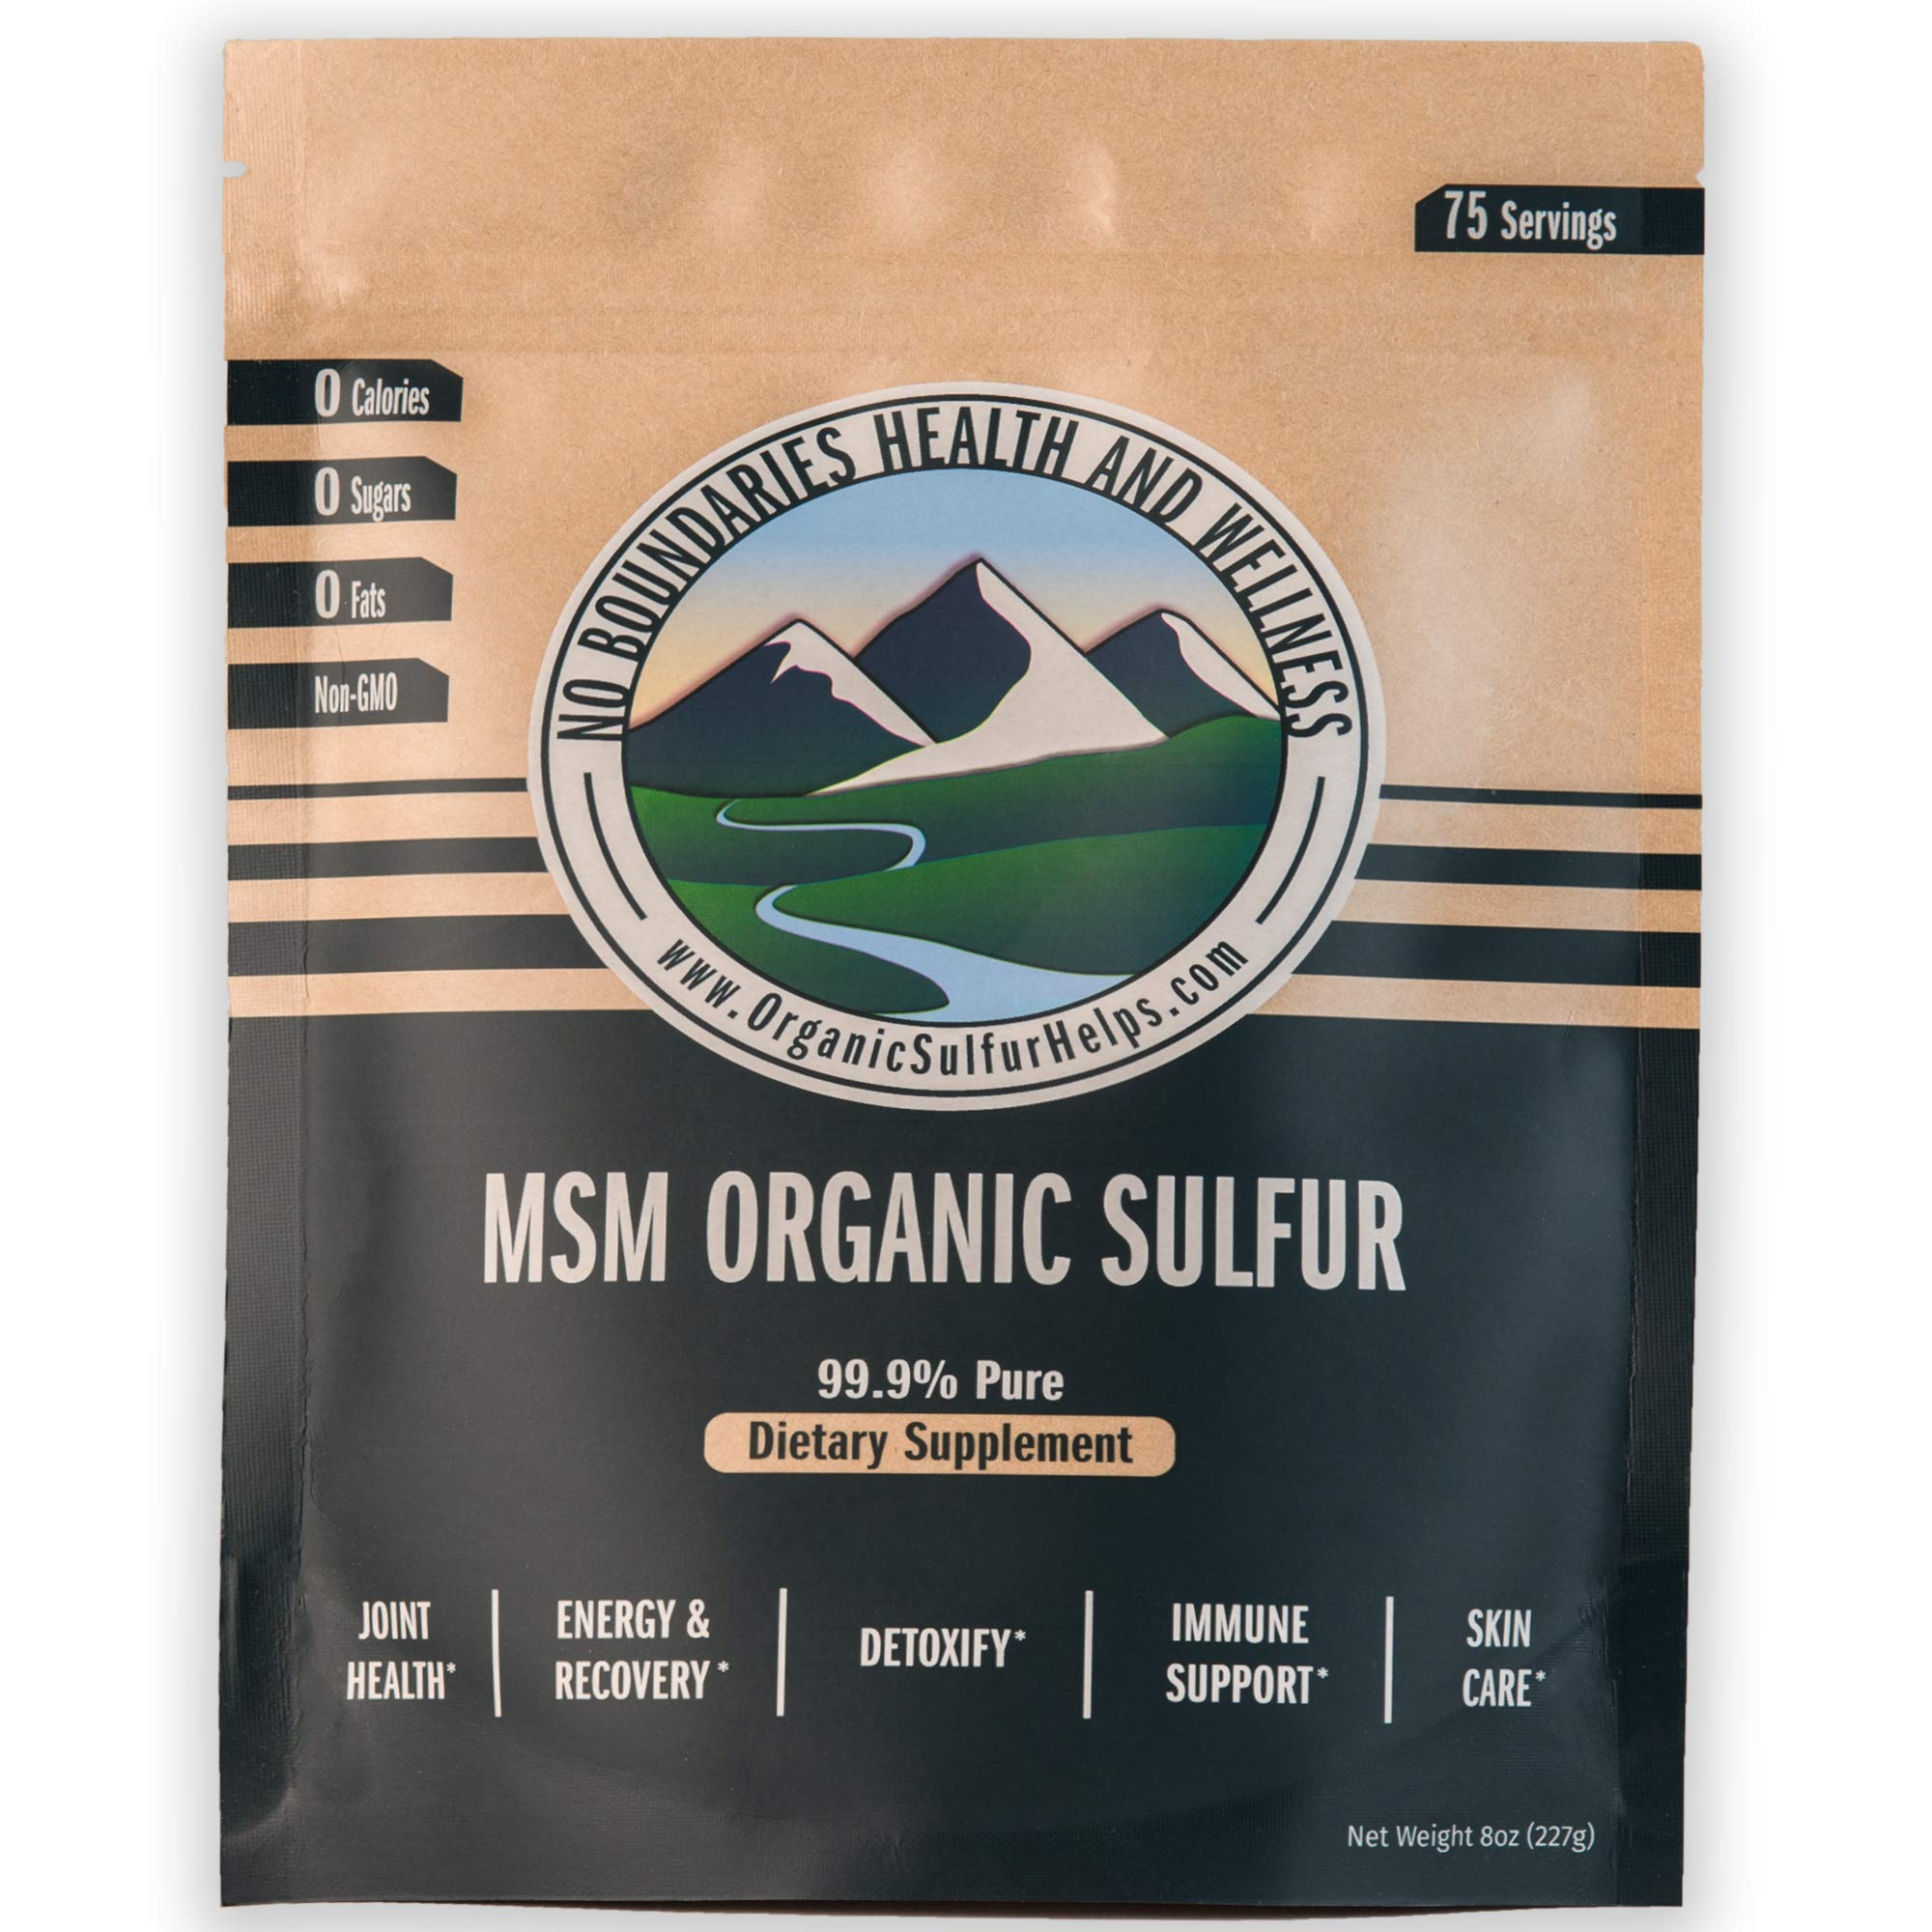 MSM Organic Sulfur Crystals by No Boundaries Health and Wellness - All-Natural, Premium Health Supplement: 99.9% Pure MSM - Benefits: Joint Pain, Allergies, Skin, Hair & Nail Health - No Fillers by No Boundaries Health and Wellness MSM Organic Sulfur